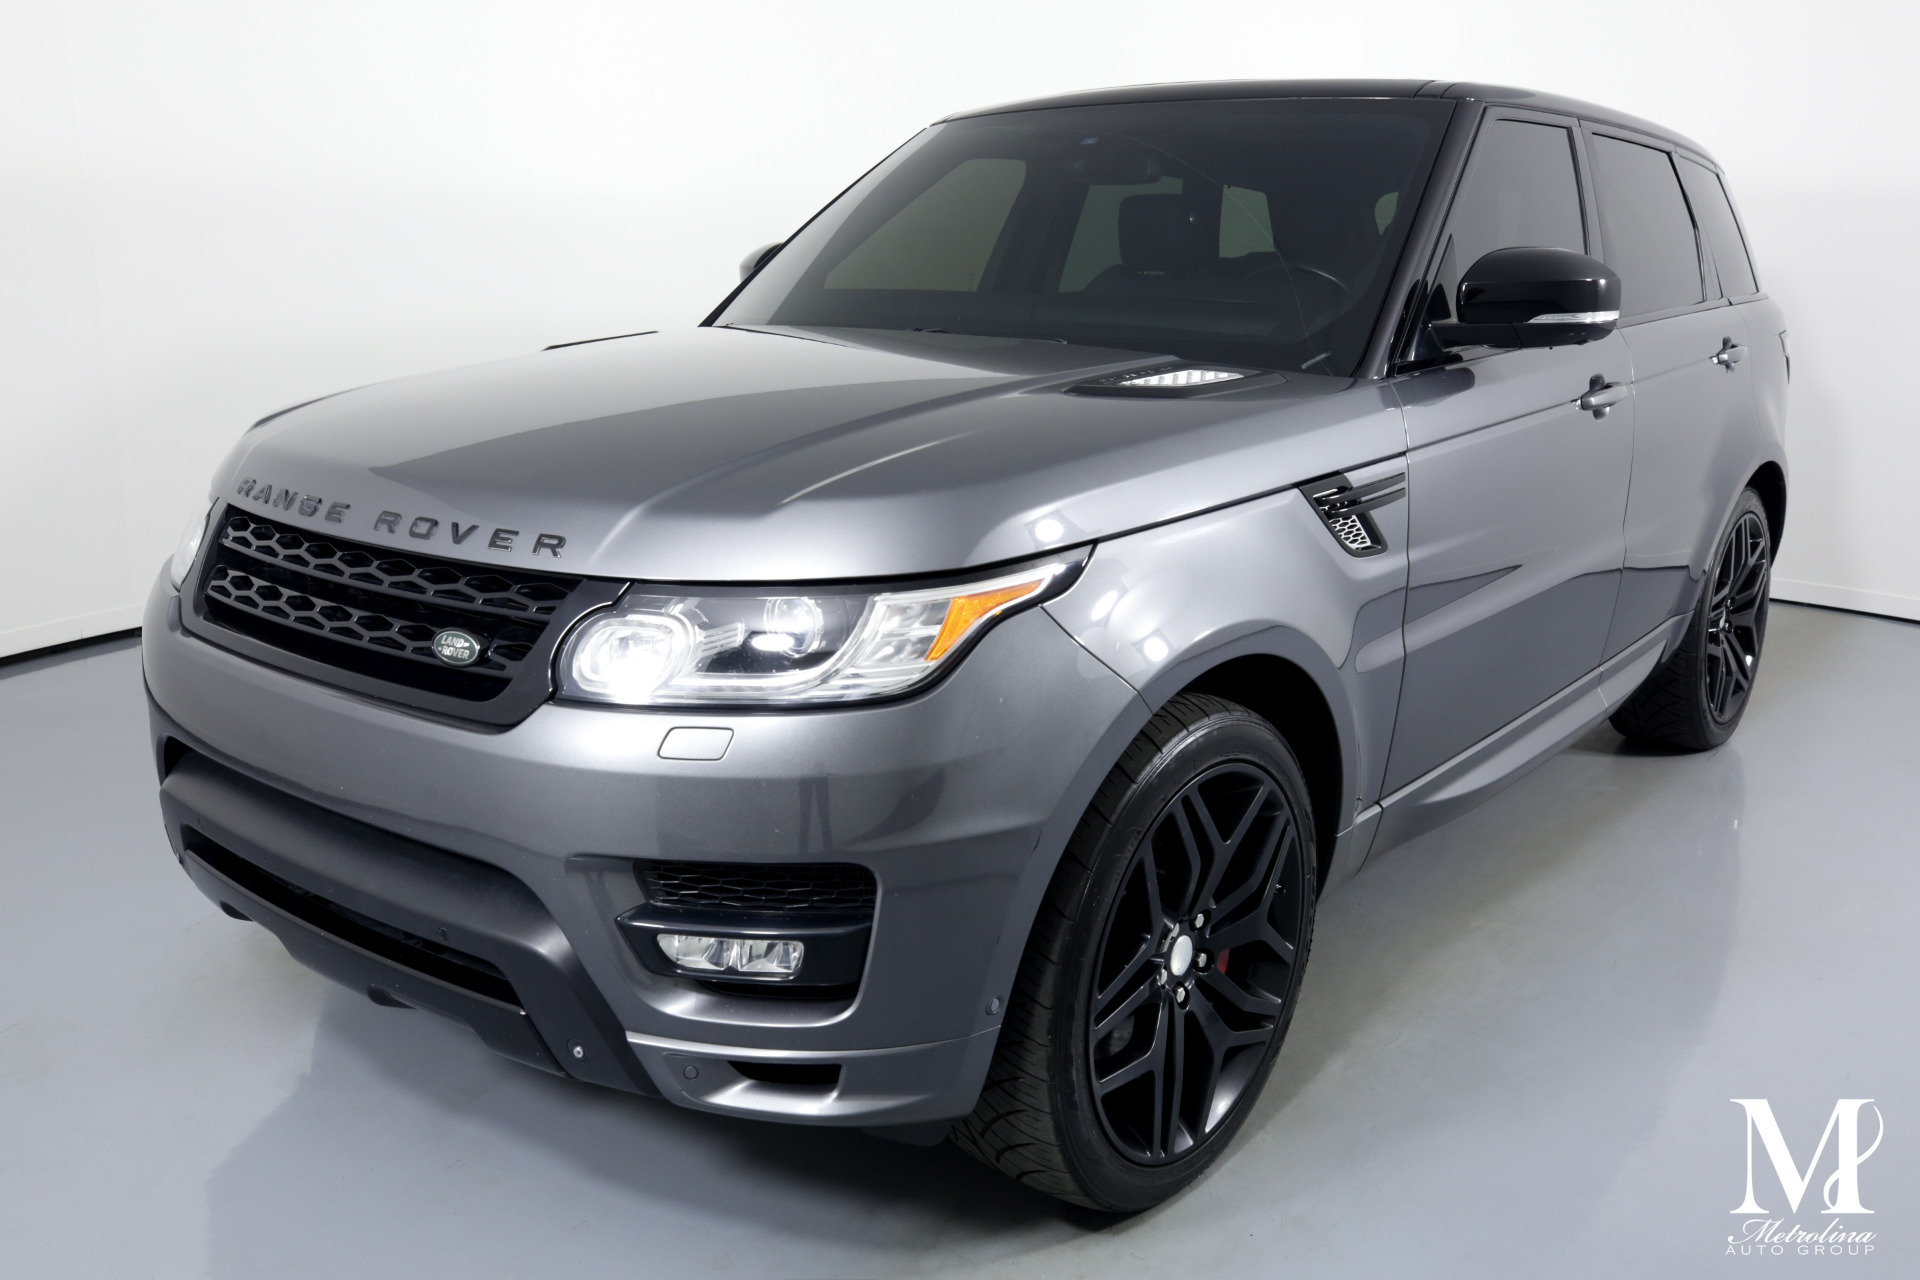 Used 2014 Land Rover Range Rover Sport Autobiography for sale Sold at Metrolina Auto Group in Charlotte NC 28217 - 4